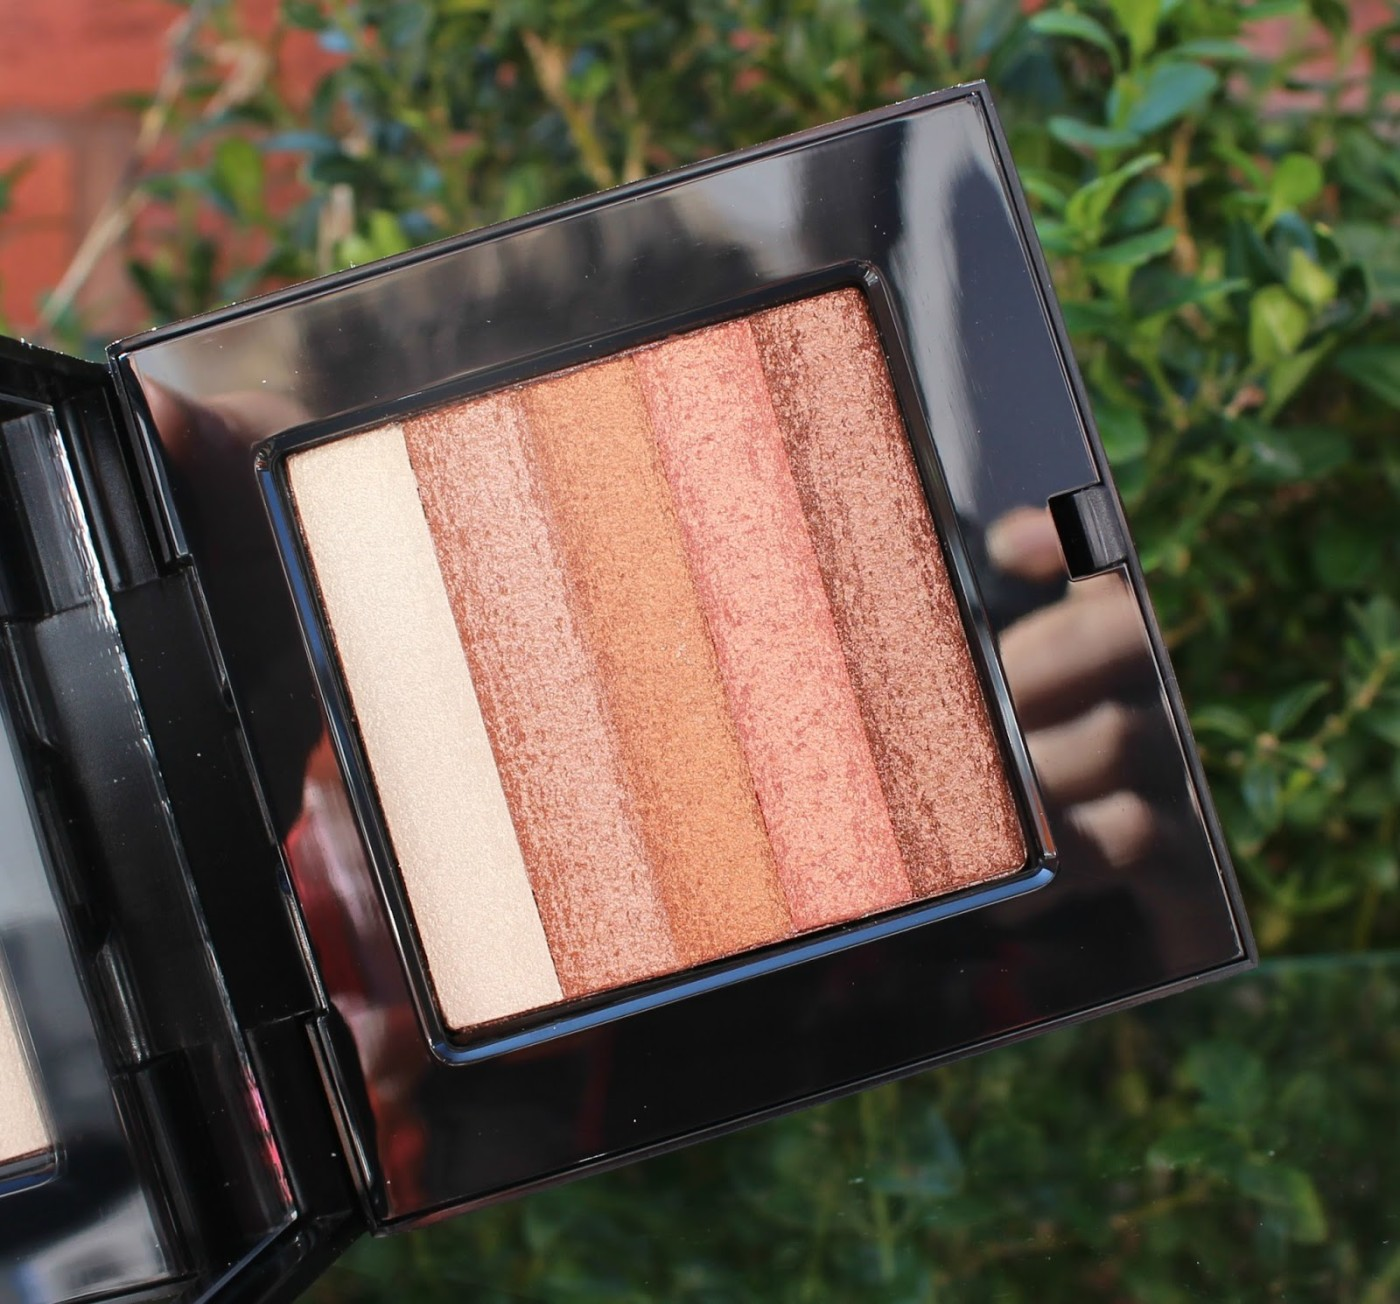 Bobbi Brown, Bobbi Brown shimmer brick, Bobbi Brown shimmer brick bronze, review, through chelsea's eyes,